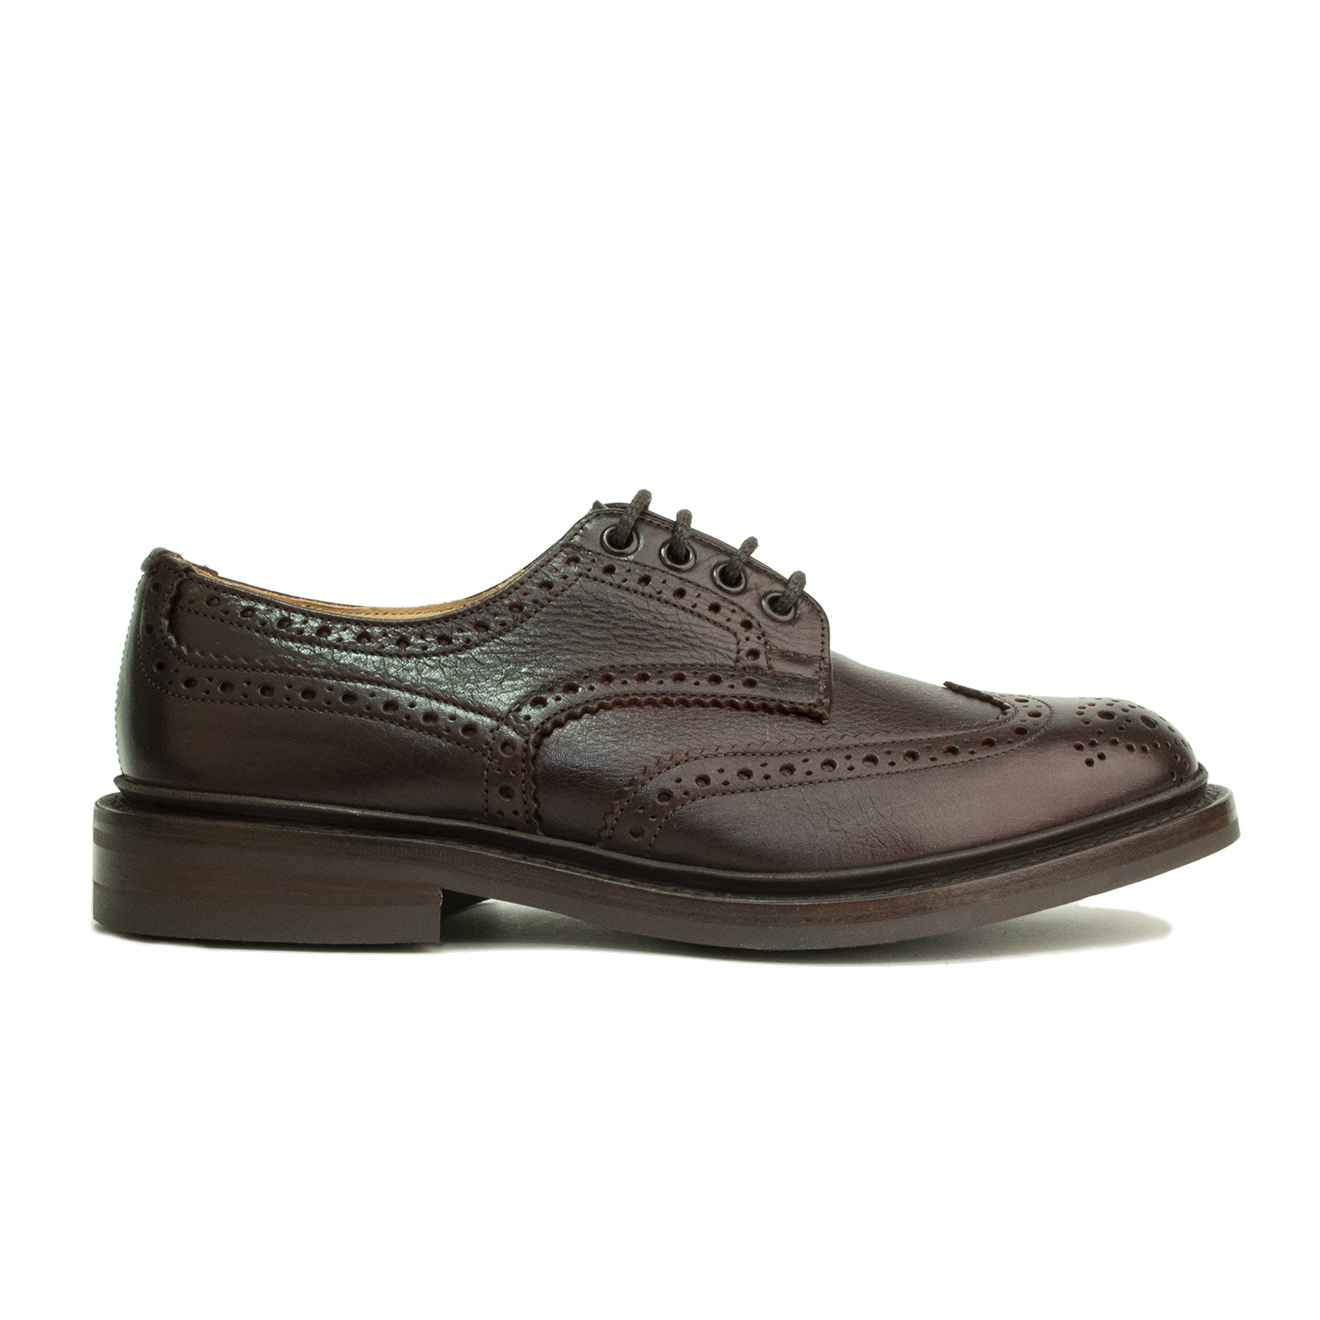 Trickers Bourton Brogue Derby Shoe Polo Kudu Brown The Sporting Lodge